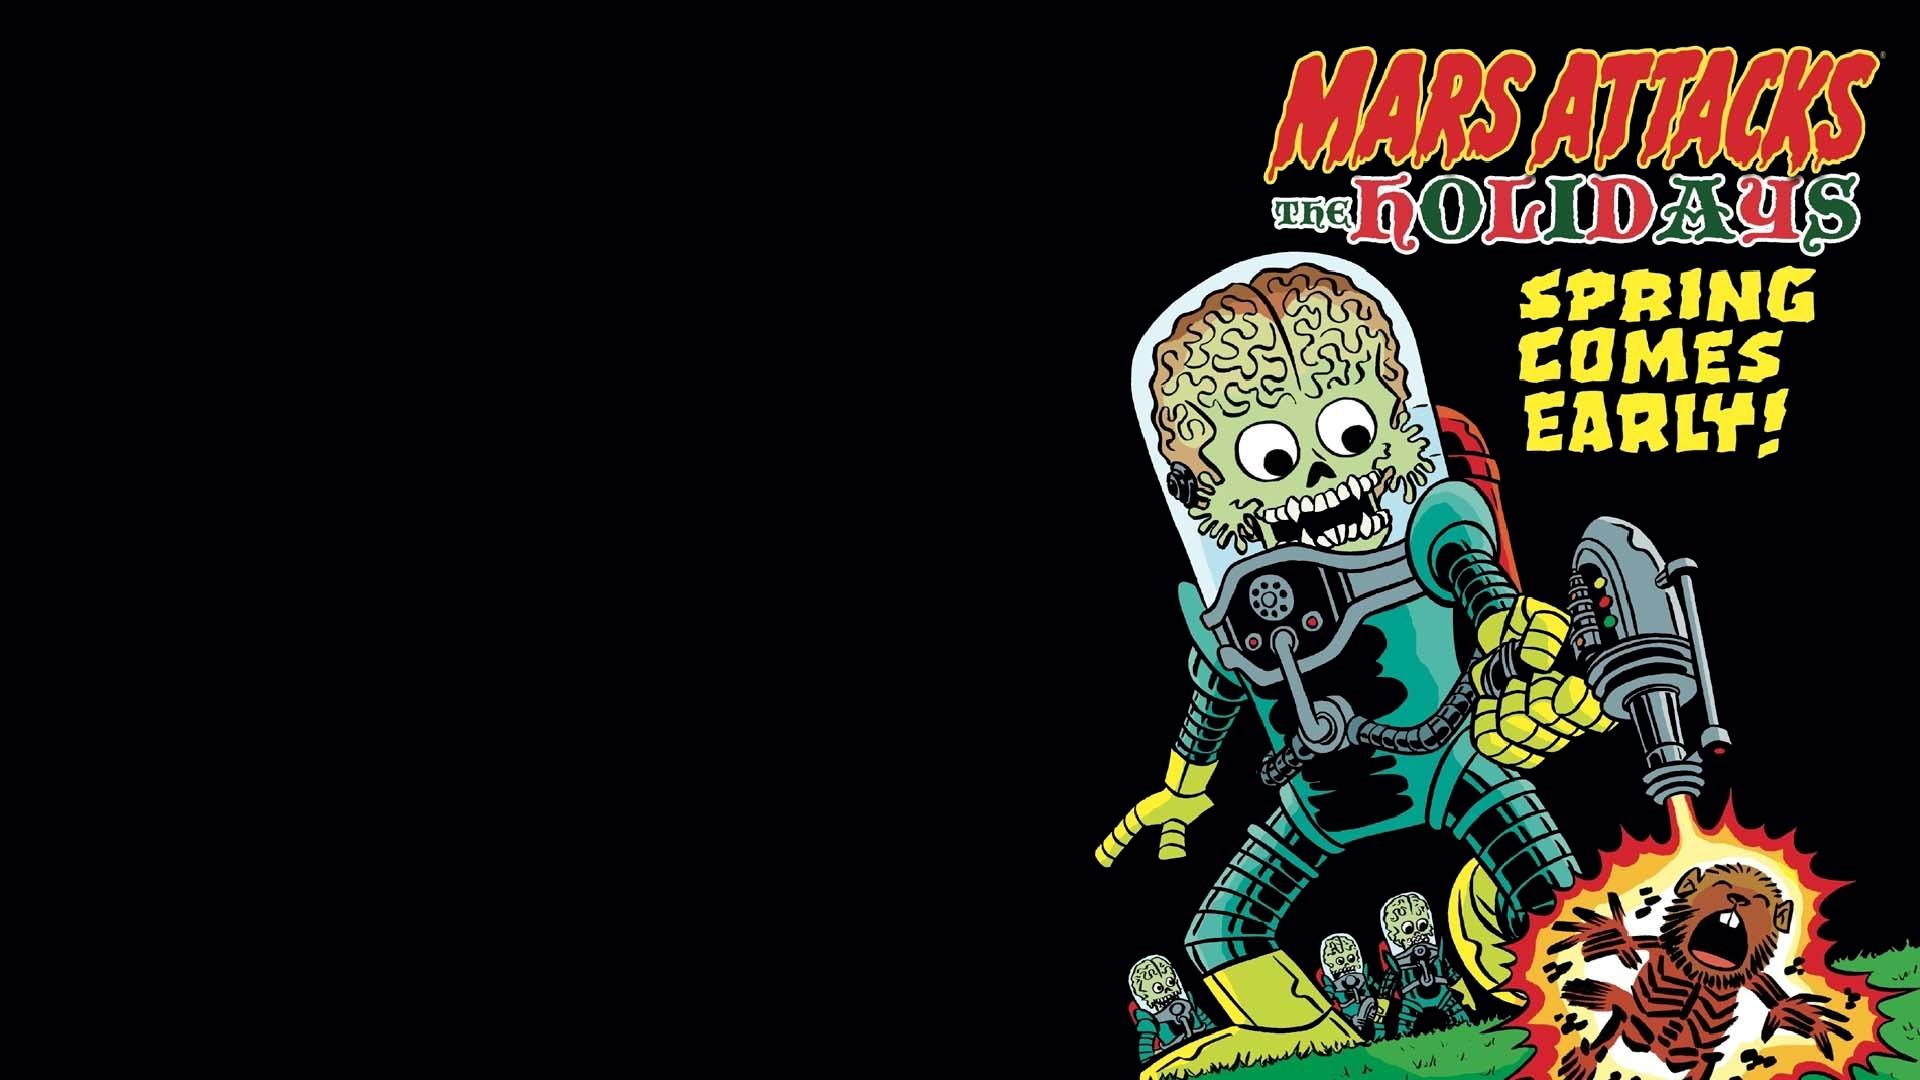 Mars Attacks wallpapers HD quality